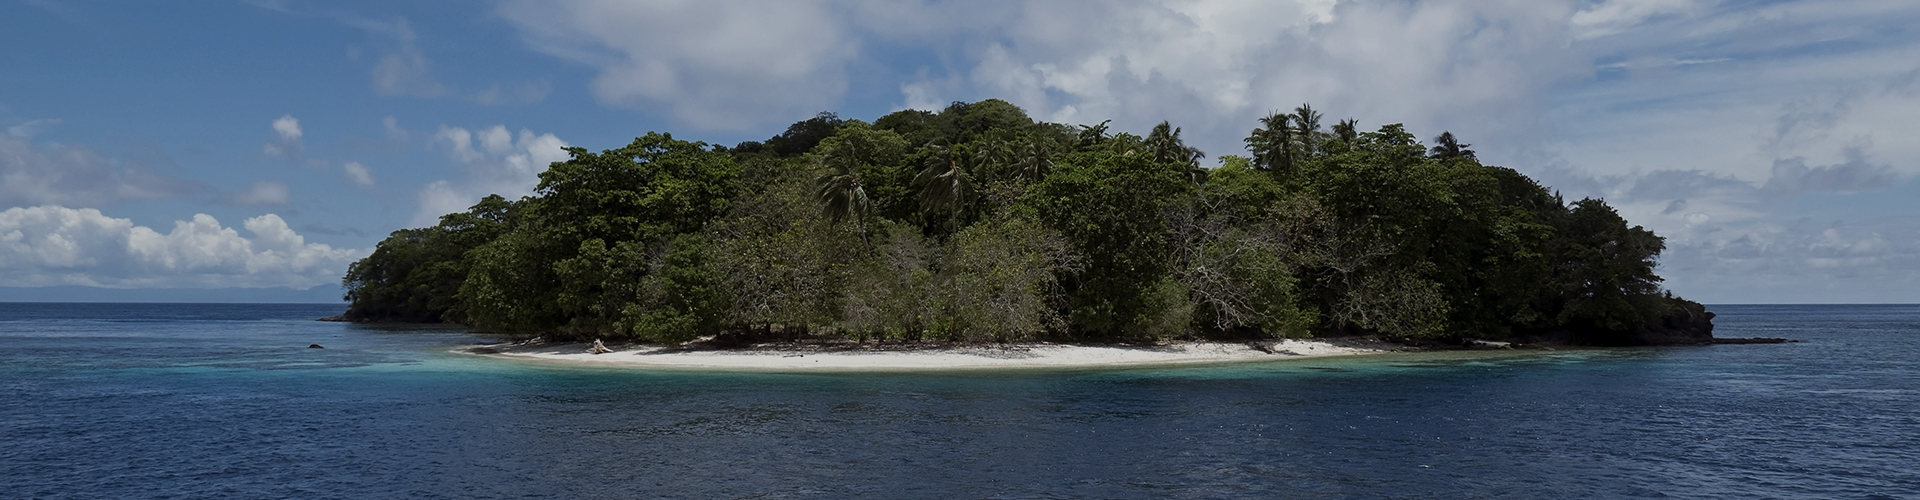 Landmark photograph of Solomon Islands